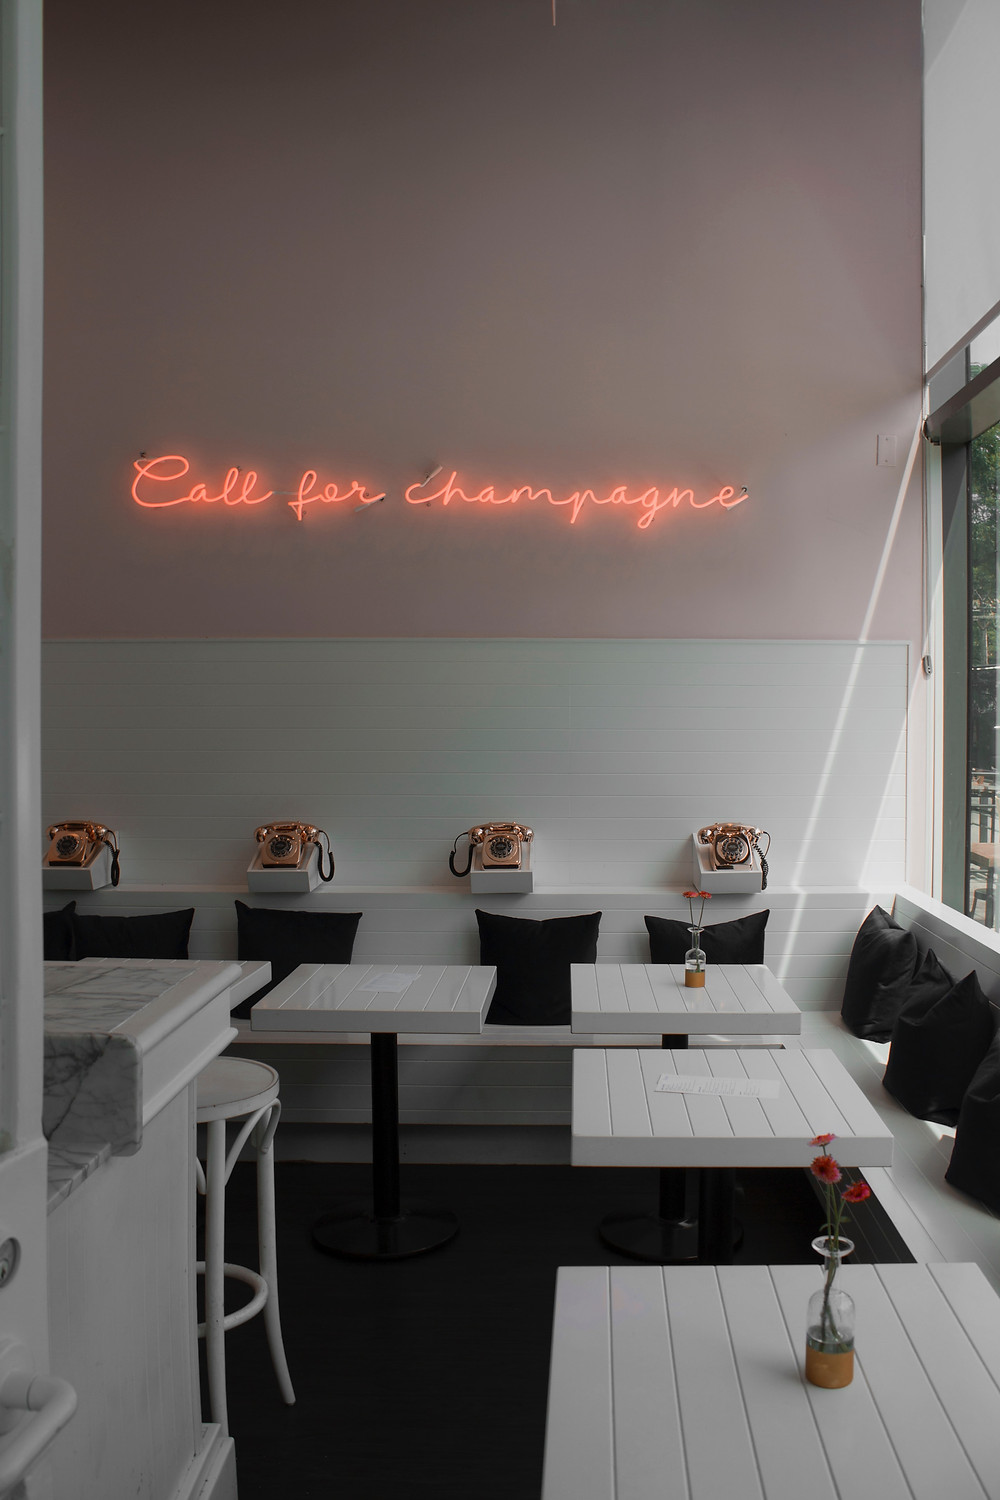 call for champagne pink light sign